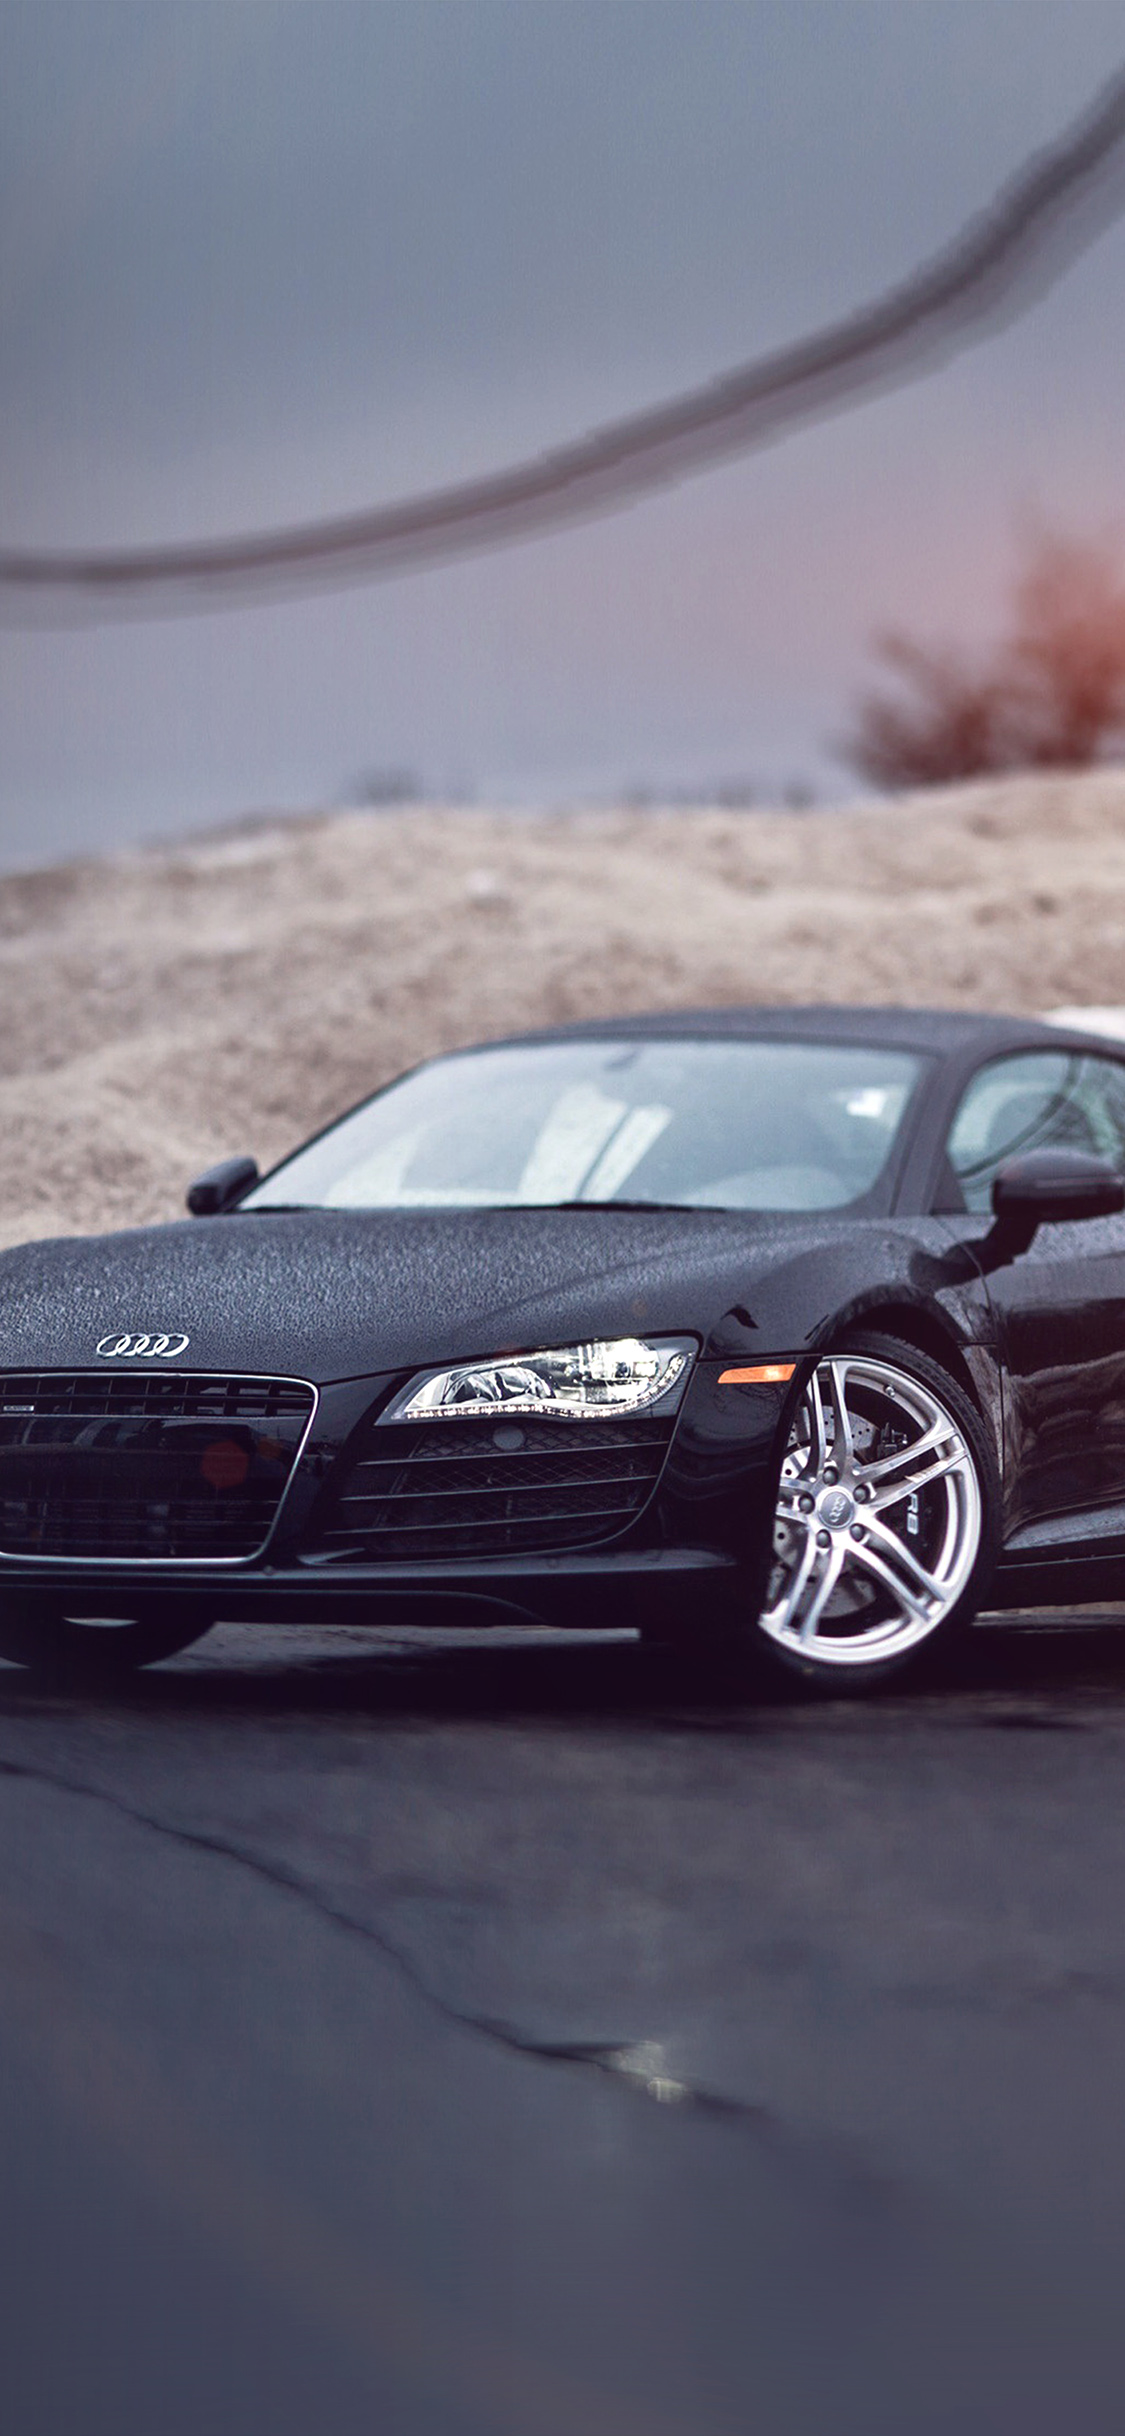 Audi Wallpapers Iphone X The Best Hd Wallpaper